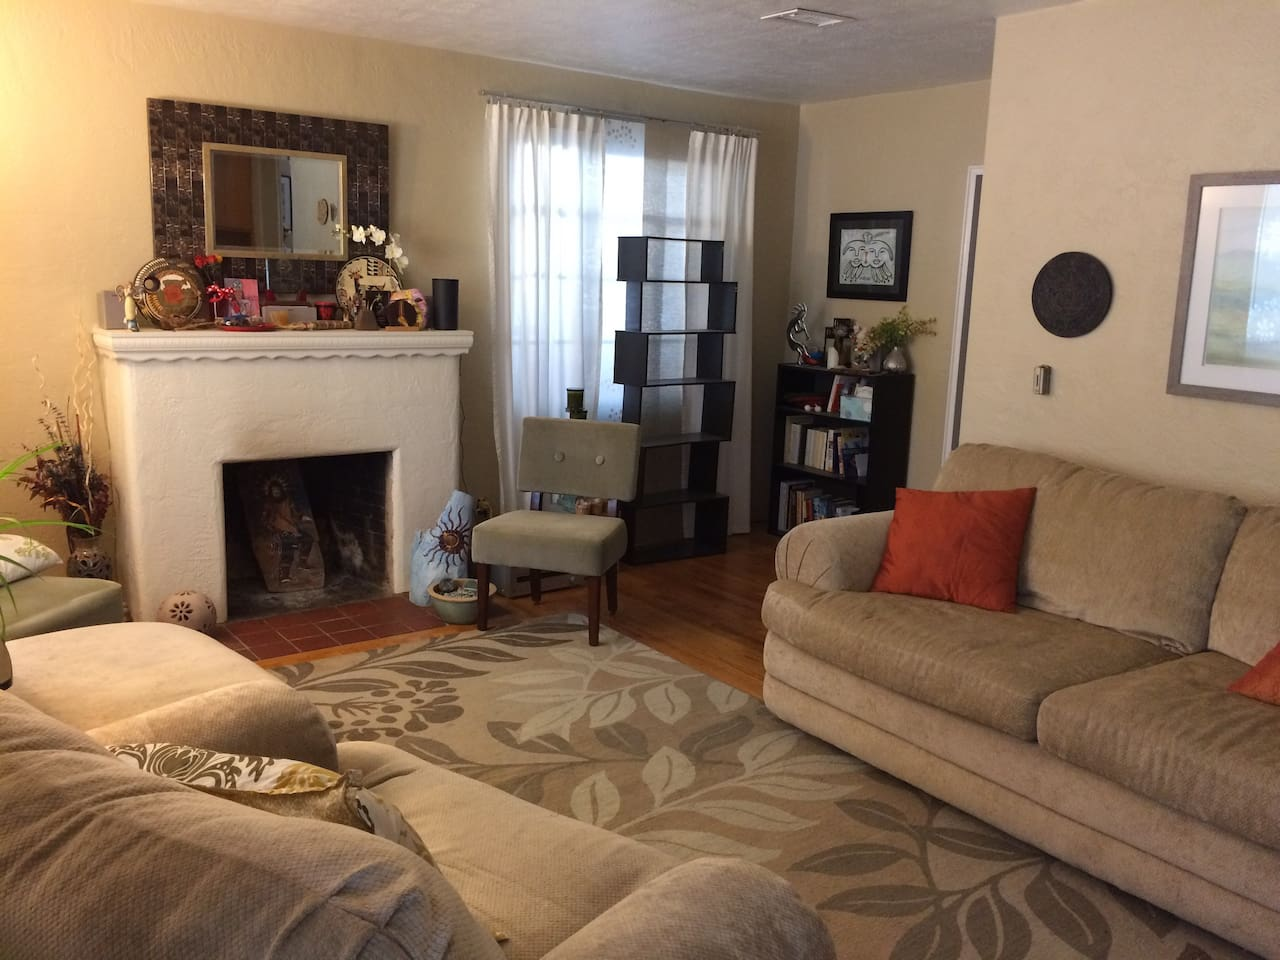 The main living room area.